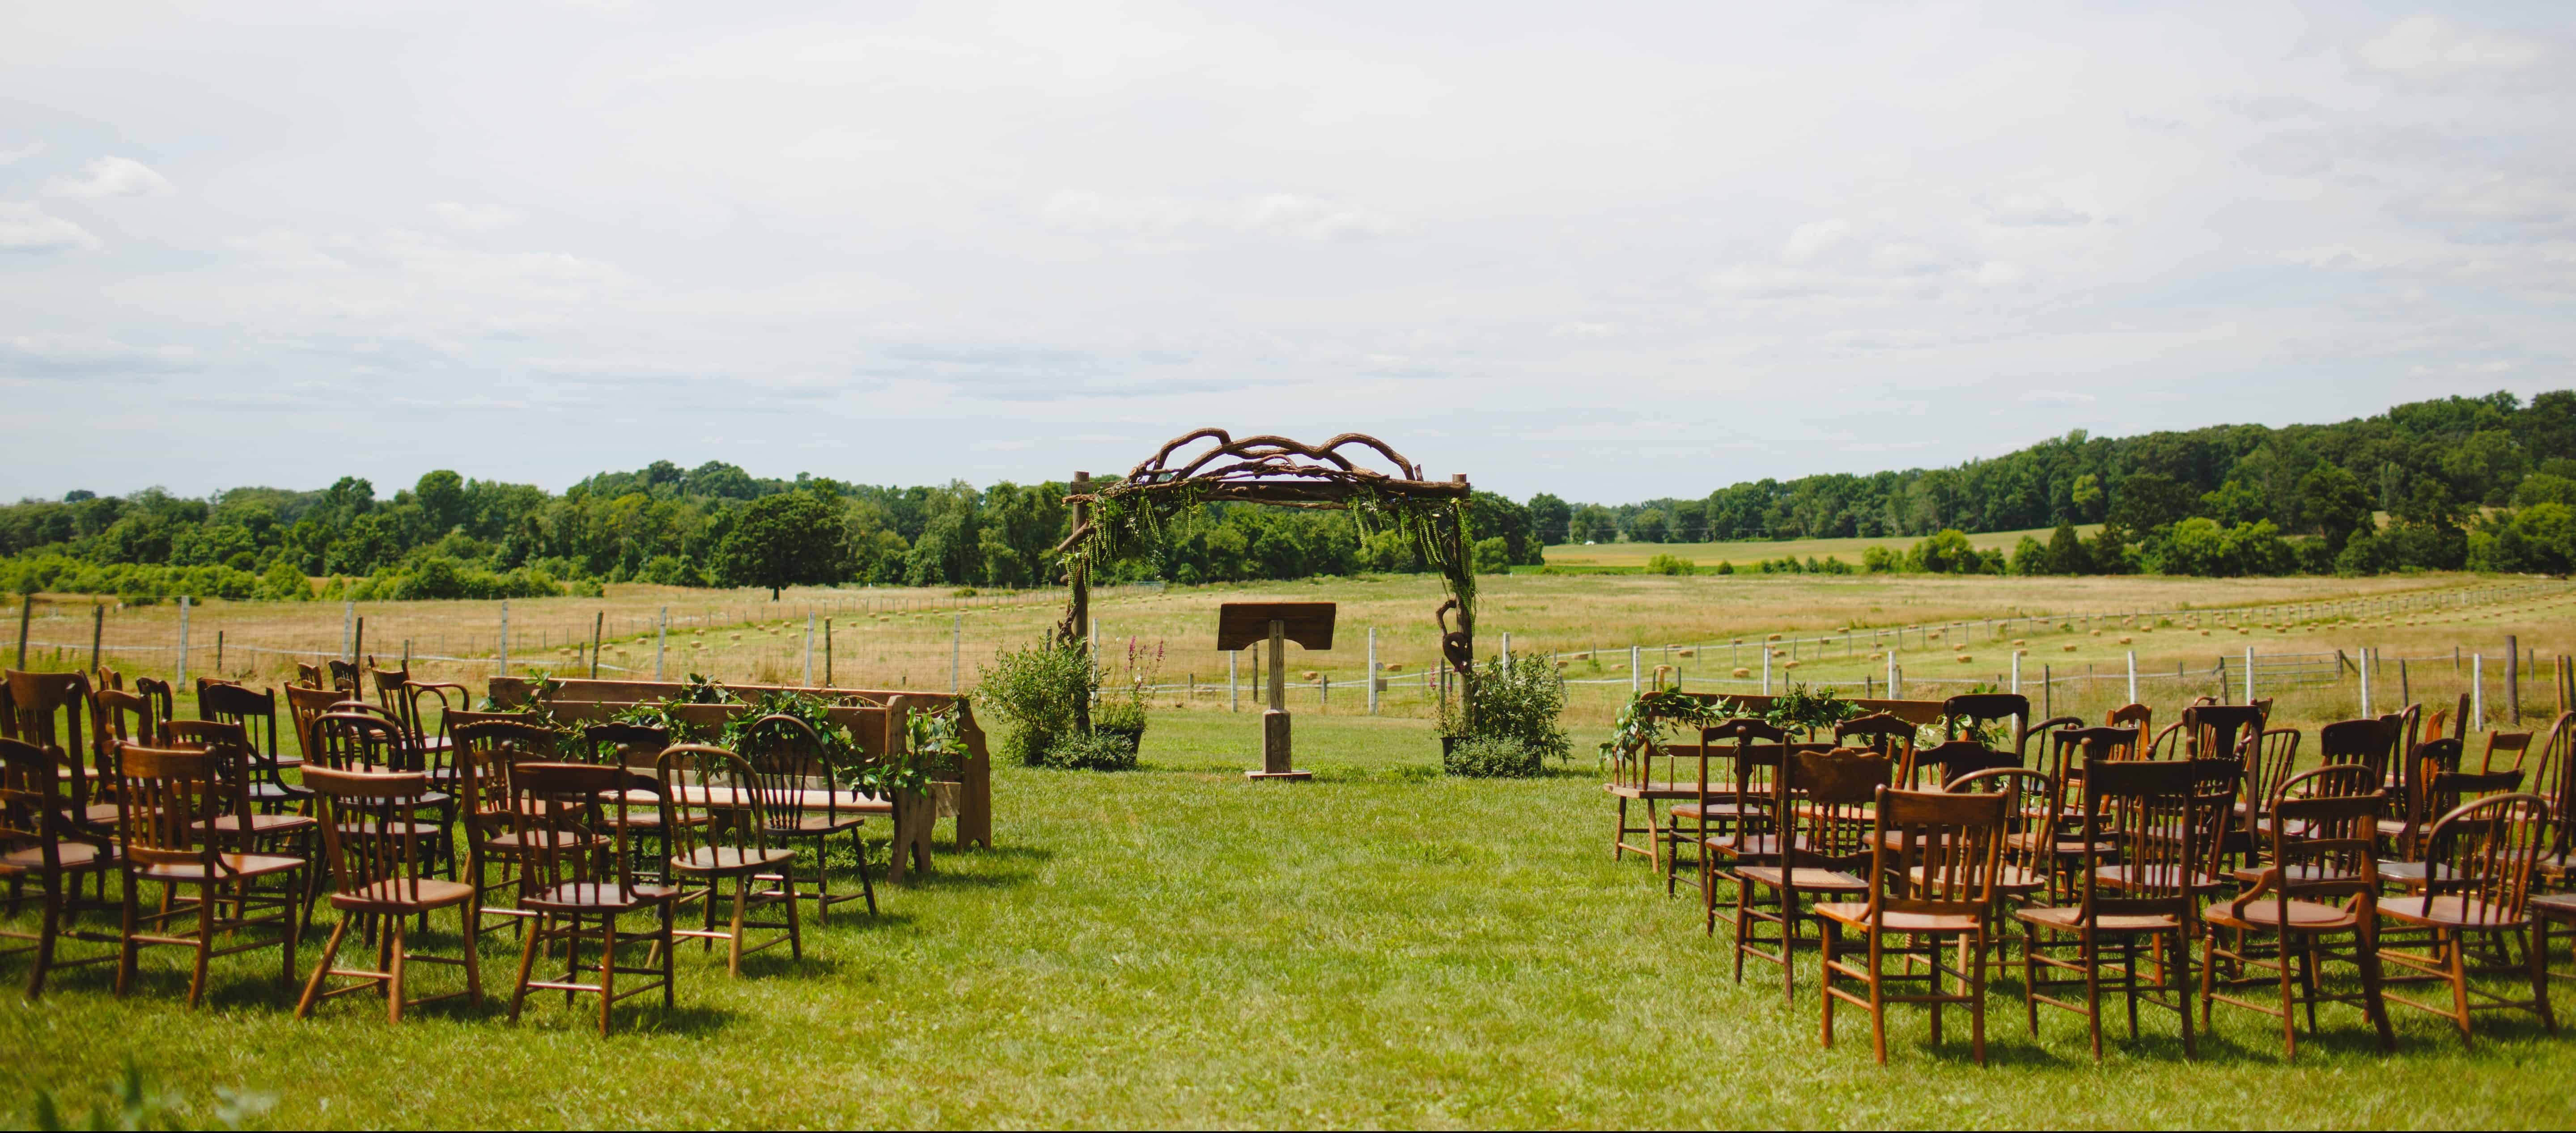 Weddings - Receptions - Special Events